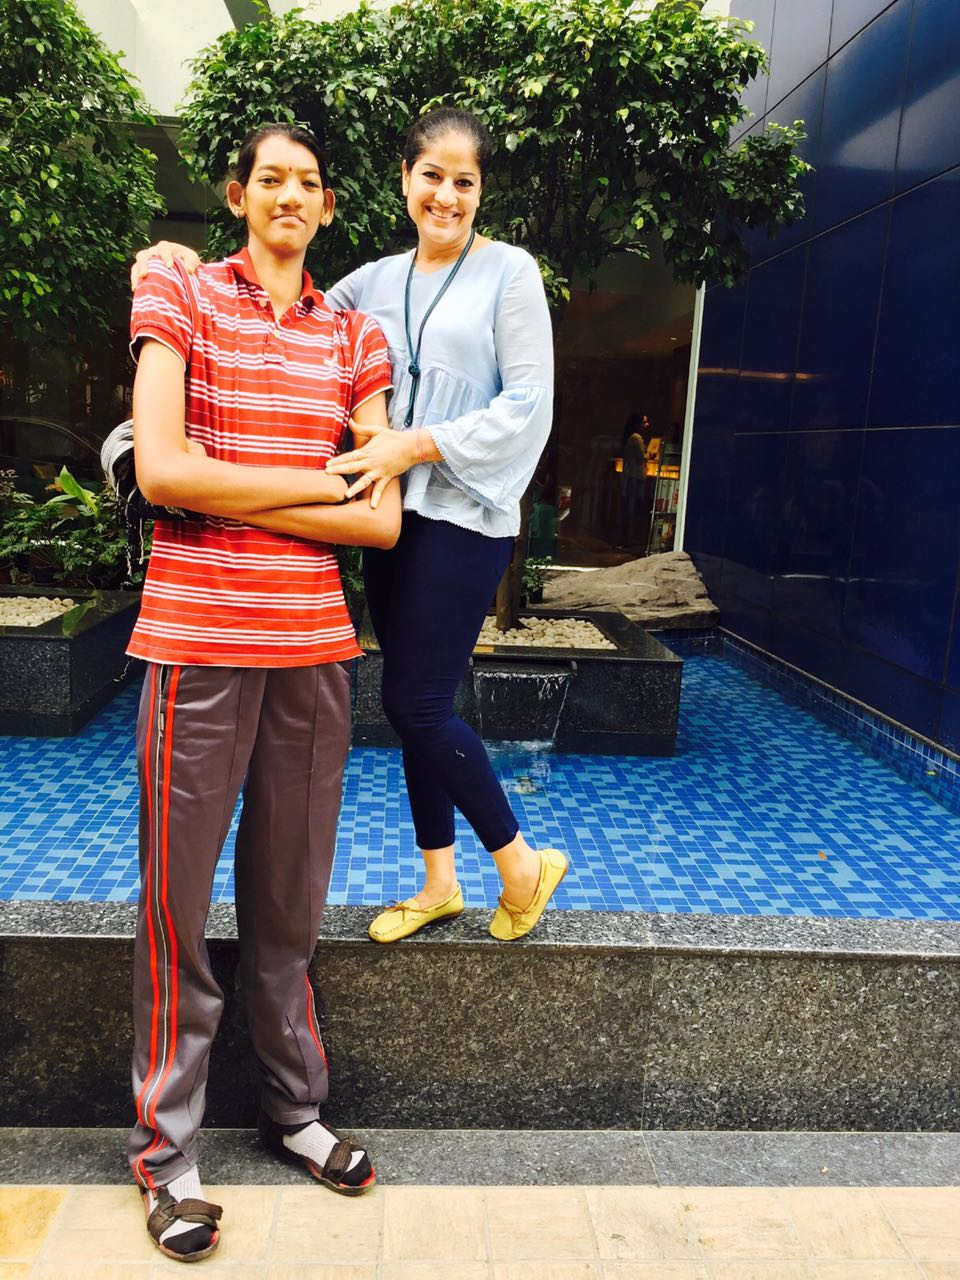 Poonam with India assistant coach Shiba Maggon.